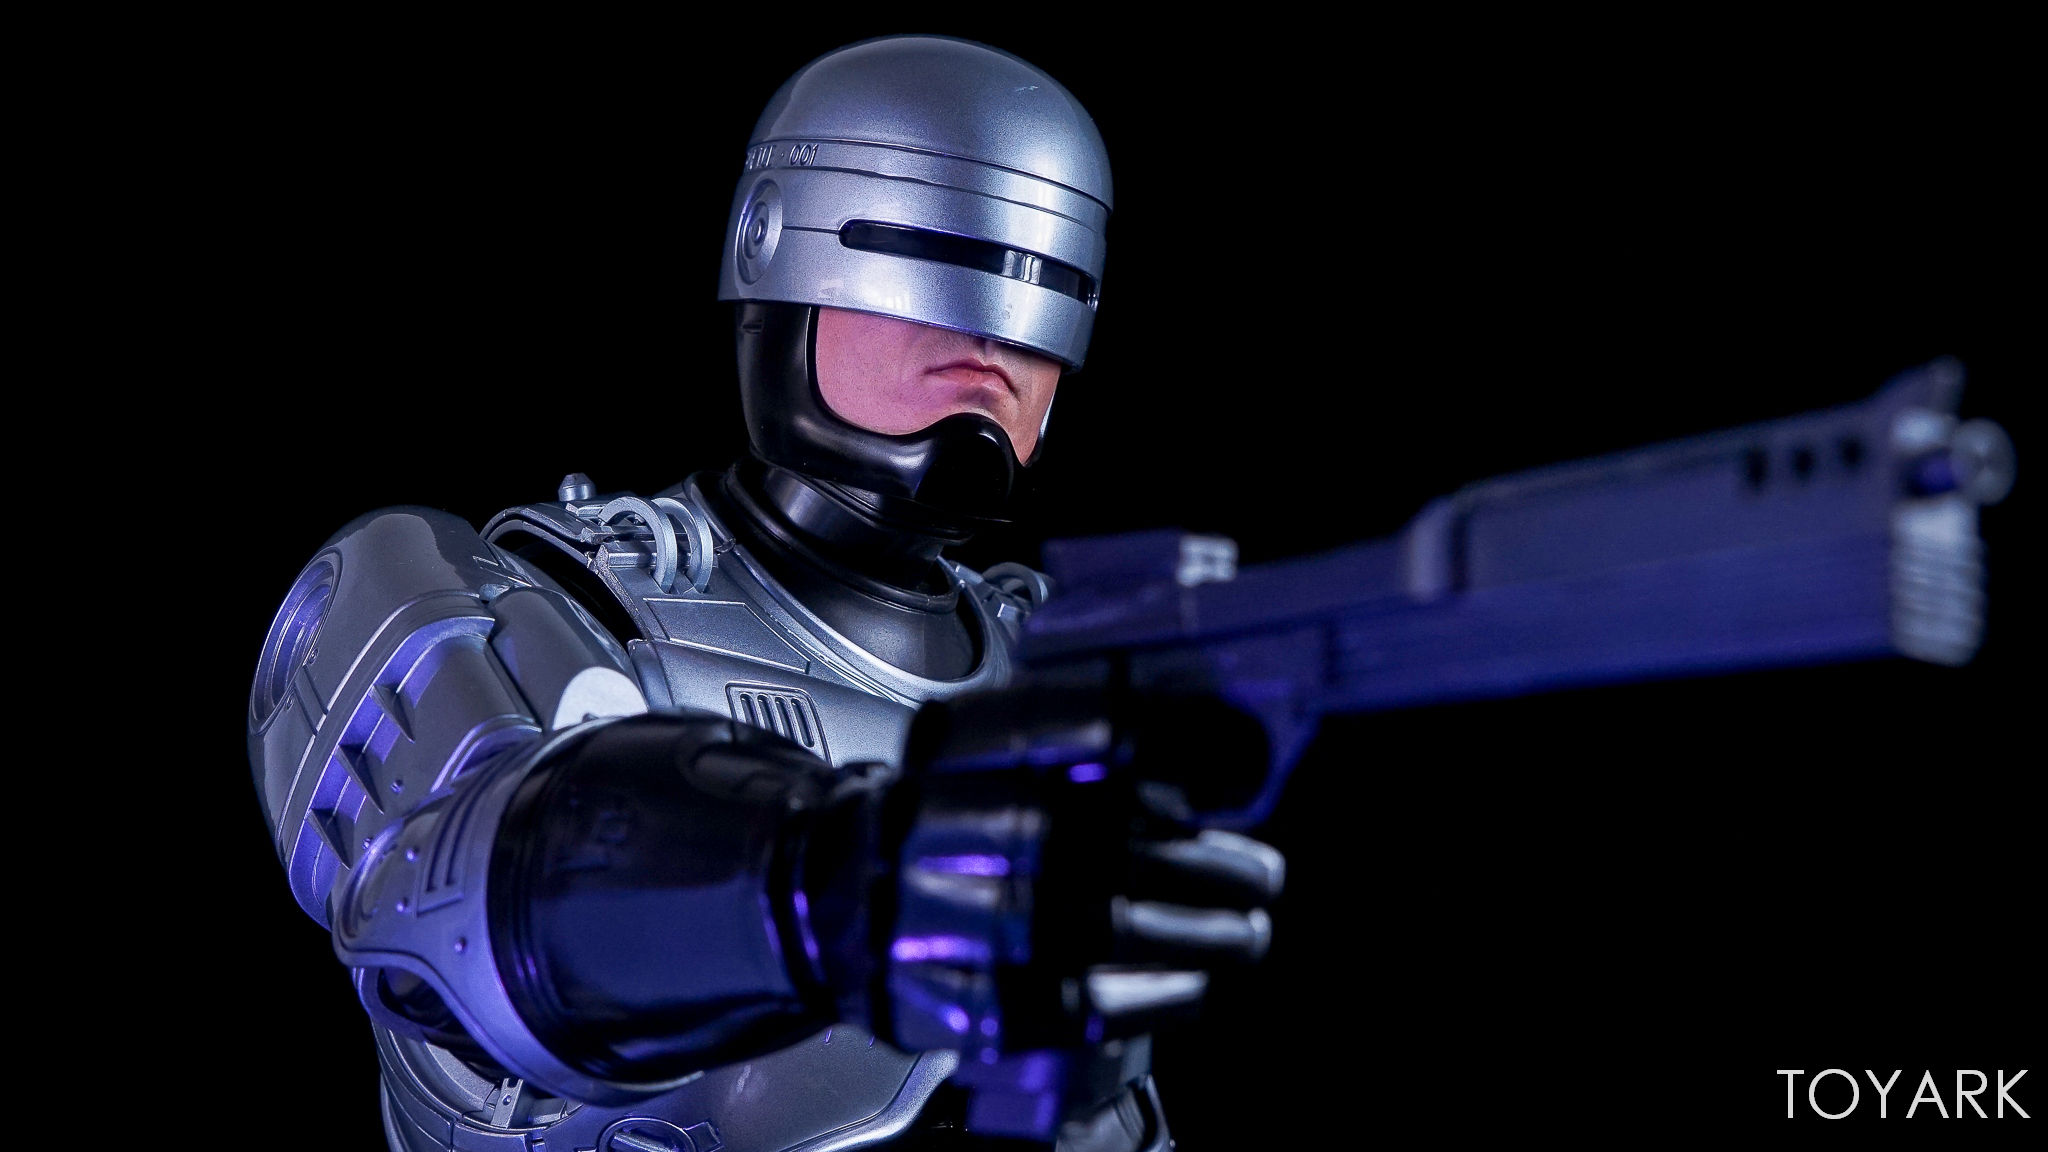 http://news.toyark.com/wp-content/uploads/sites/4/2017/07/Enterbay-Robocop-3-HD-Masterpiece-047.jpg